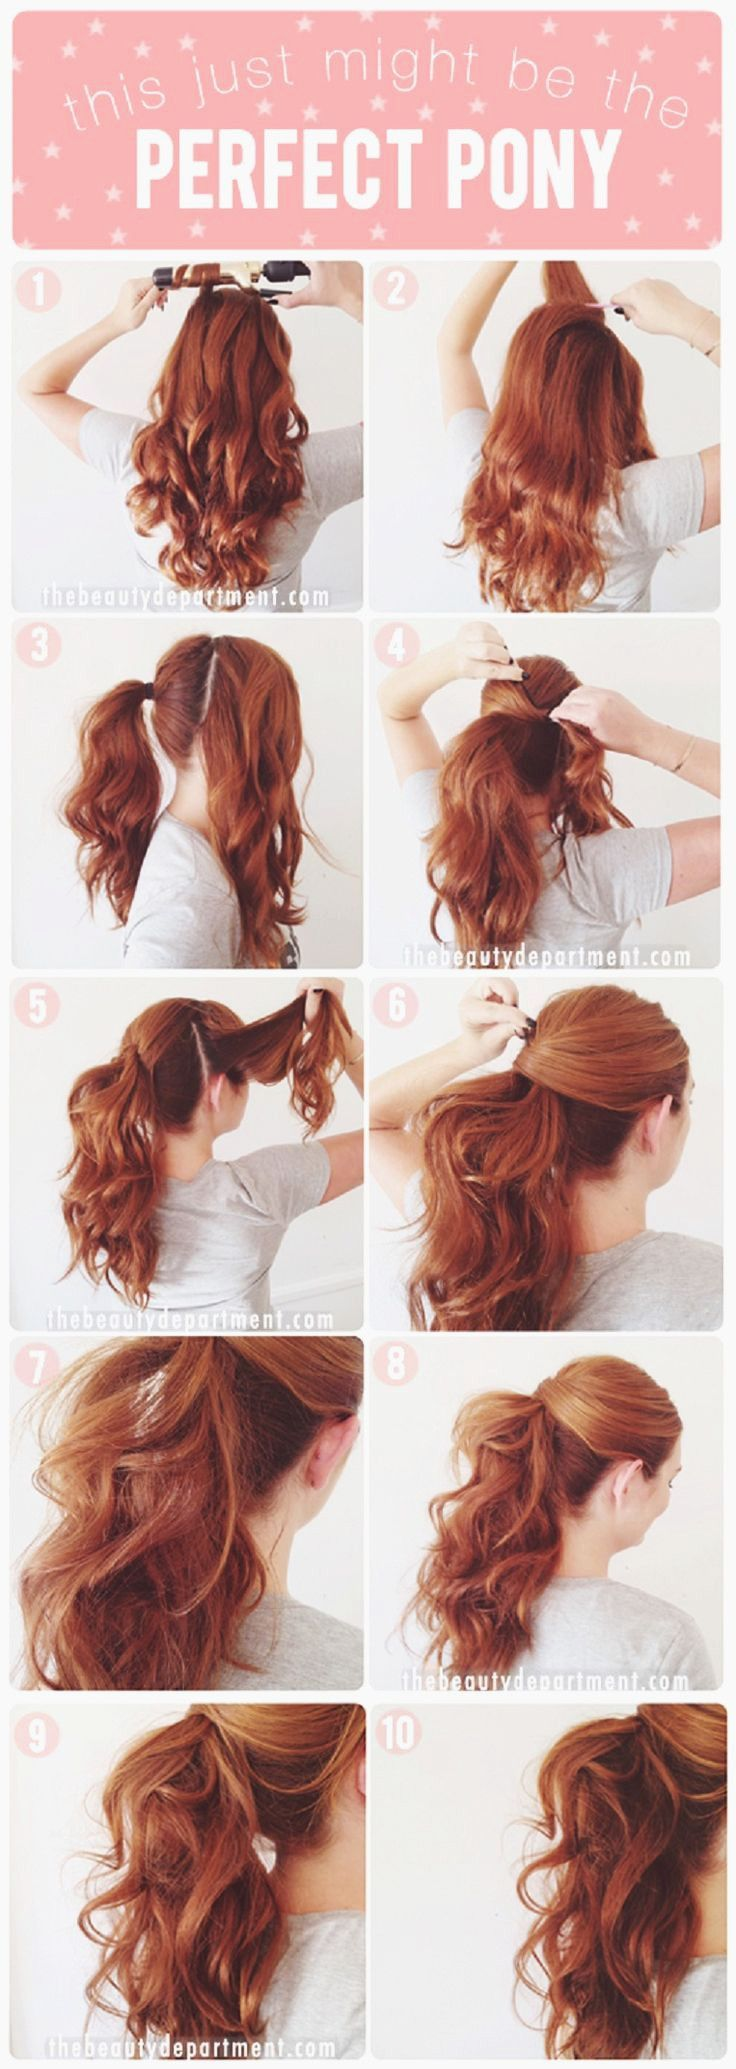 90 indian hairstyles for long hair step by step